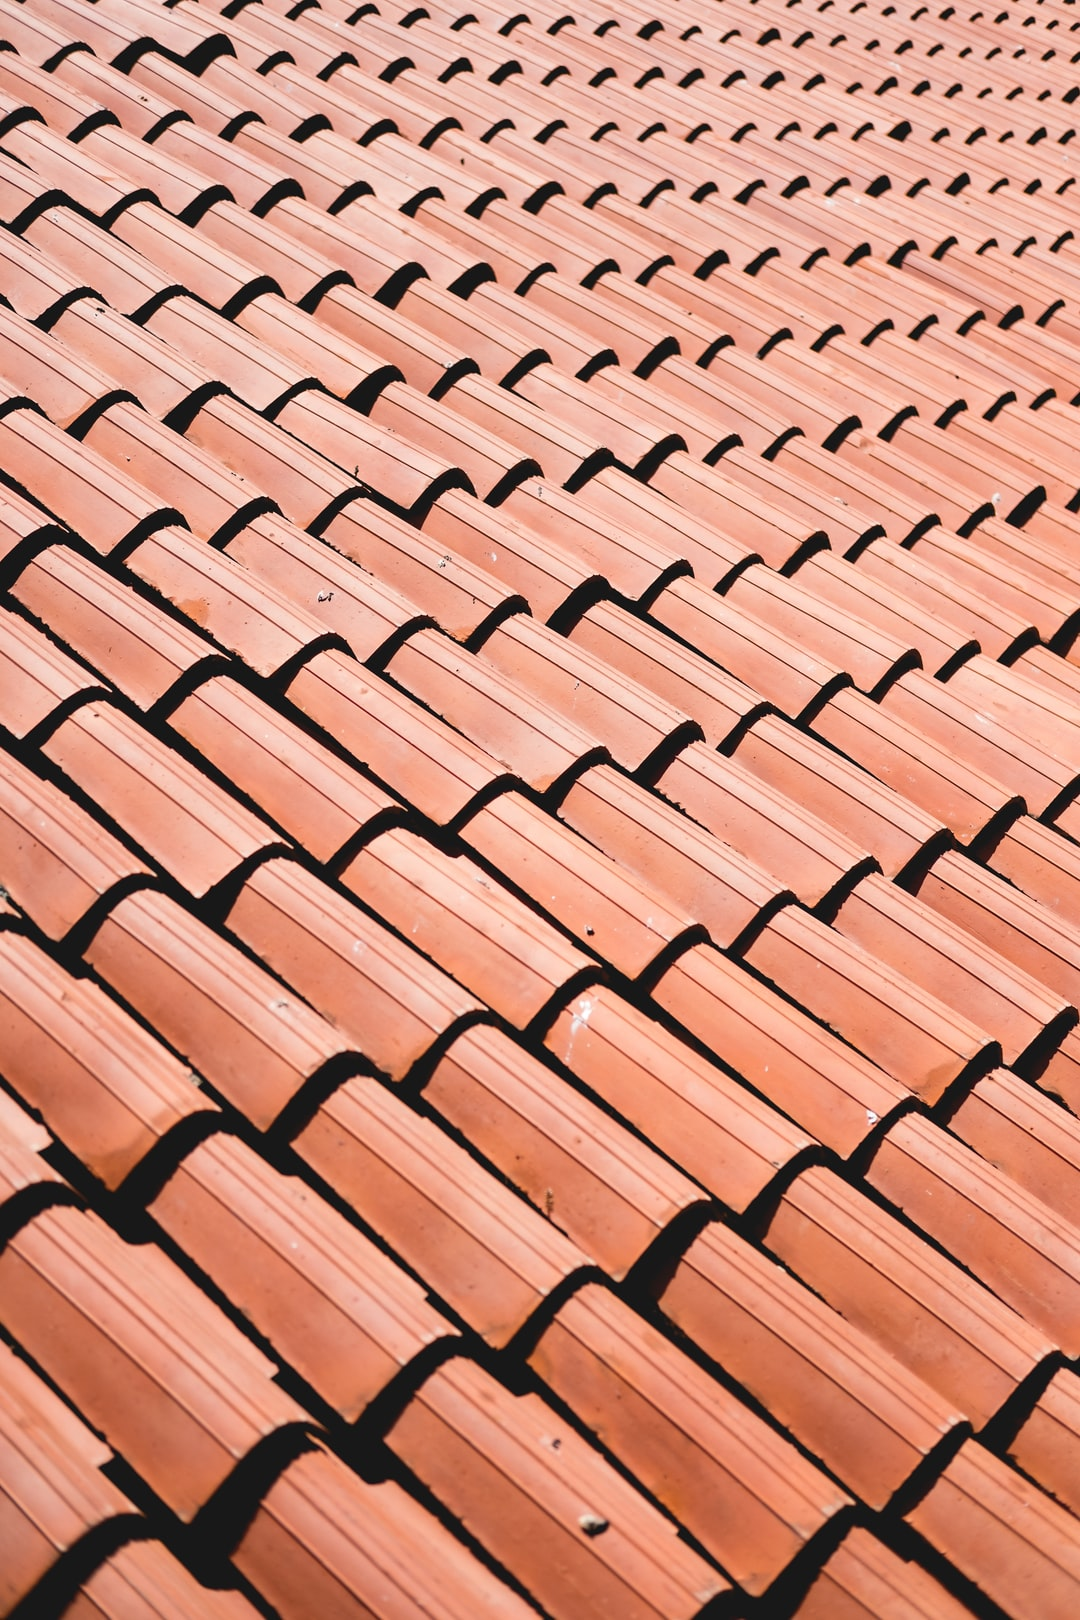 The many roof tiles of Dubrovnik